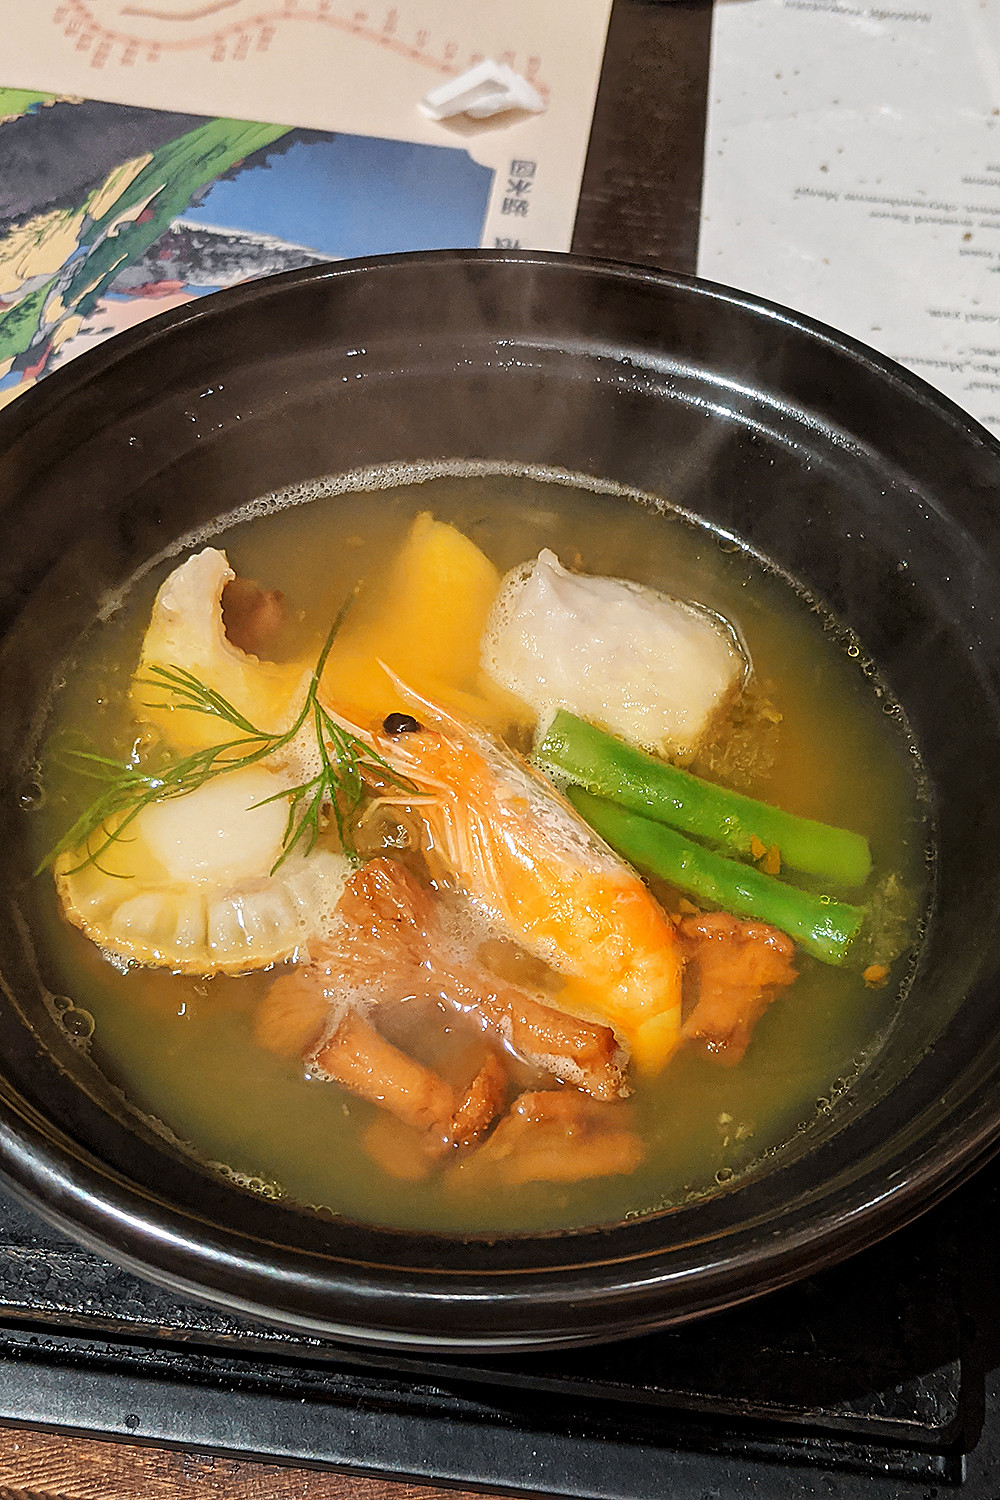 21hakone-tenyu-seafood-broth-japanese-food-travel